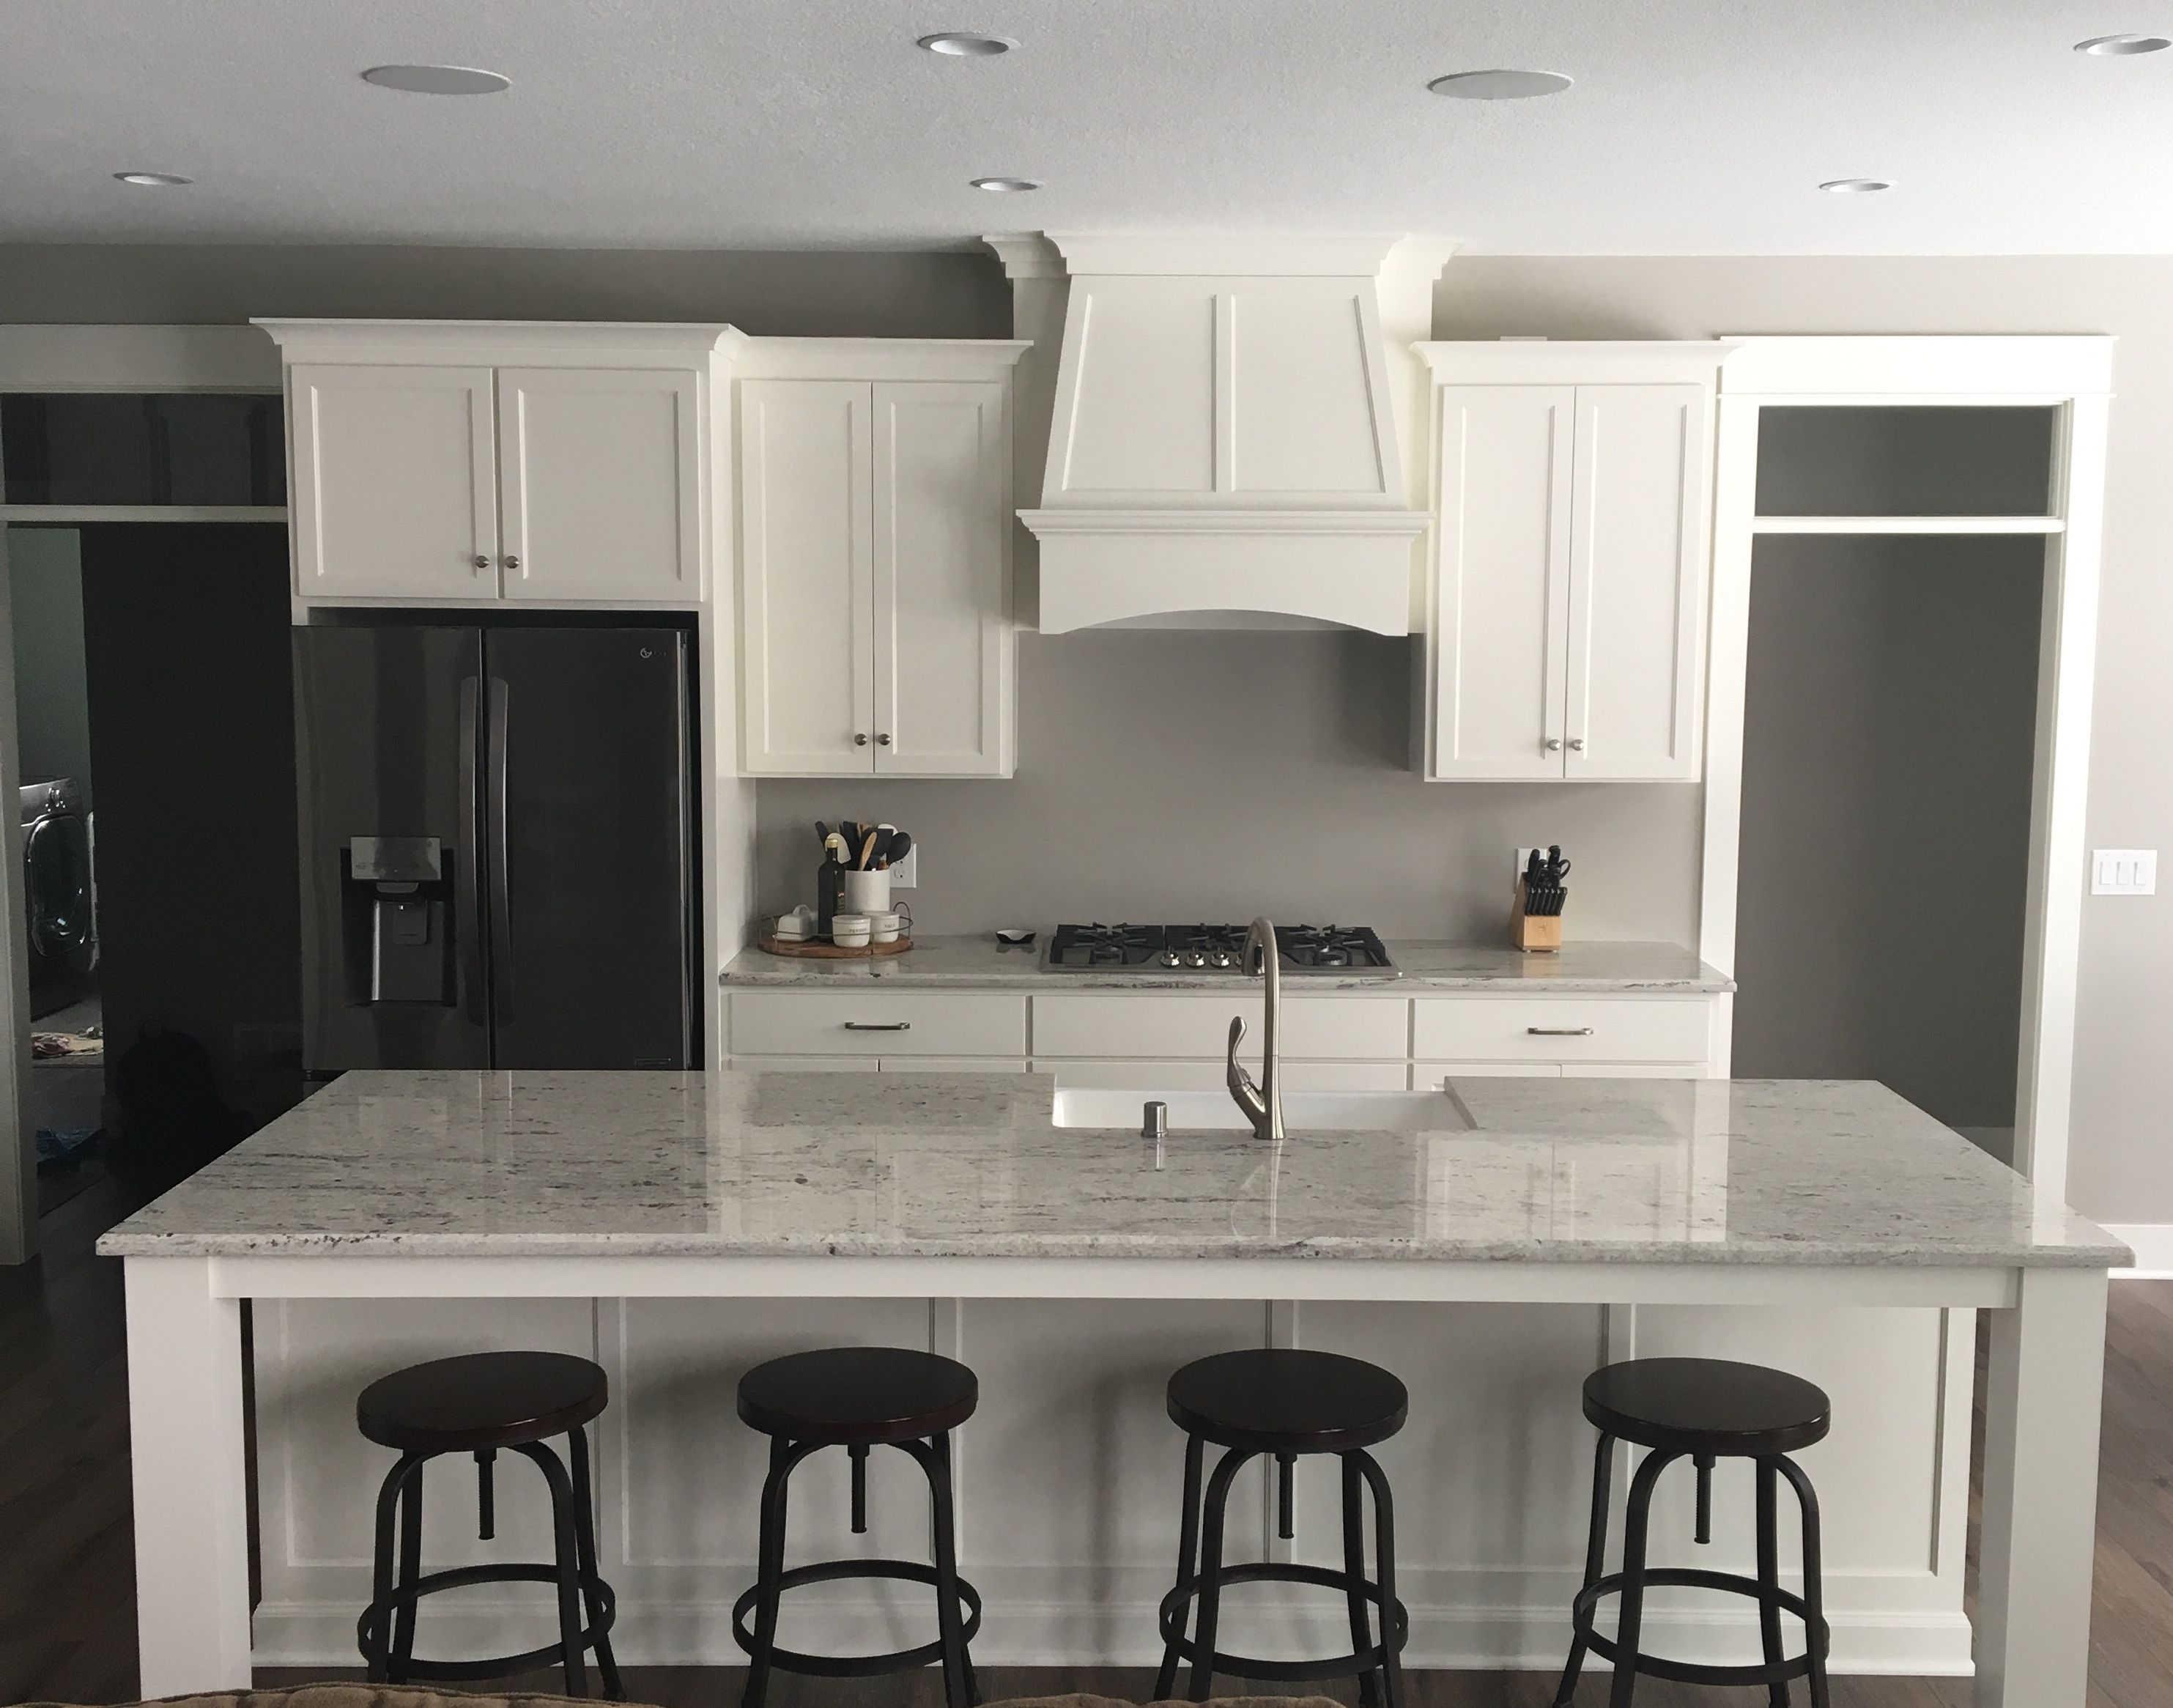 This white kitchen is classic yet modern